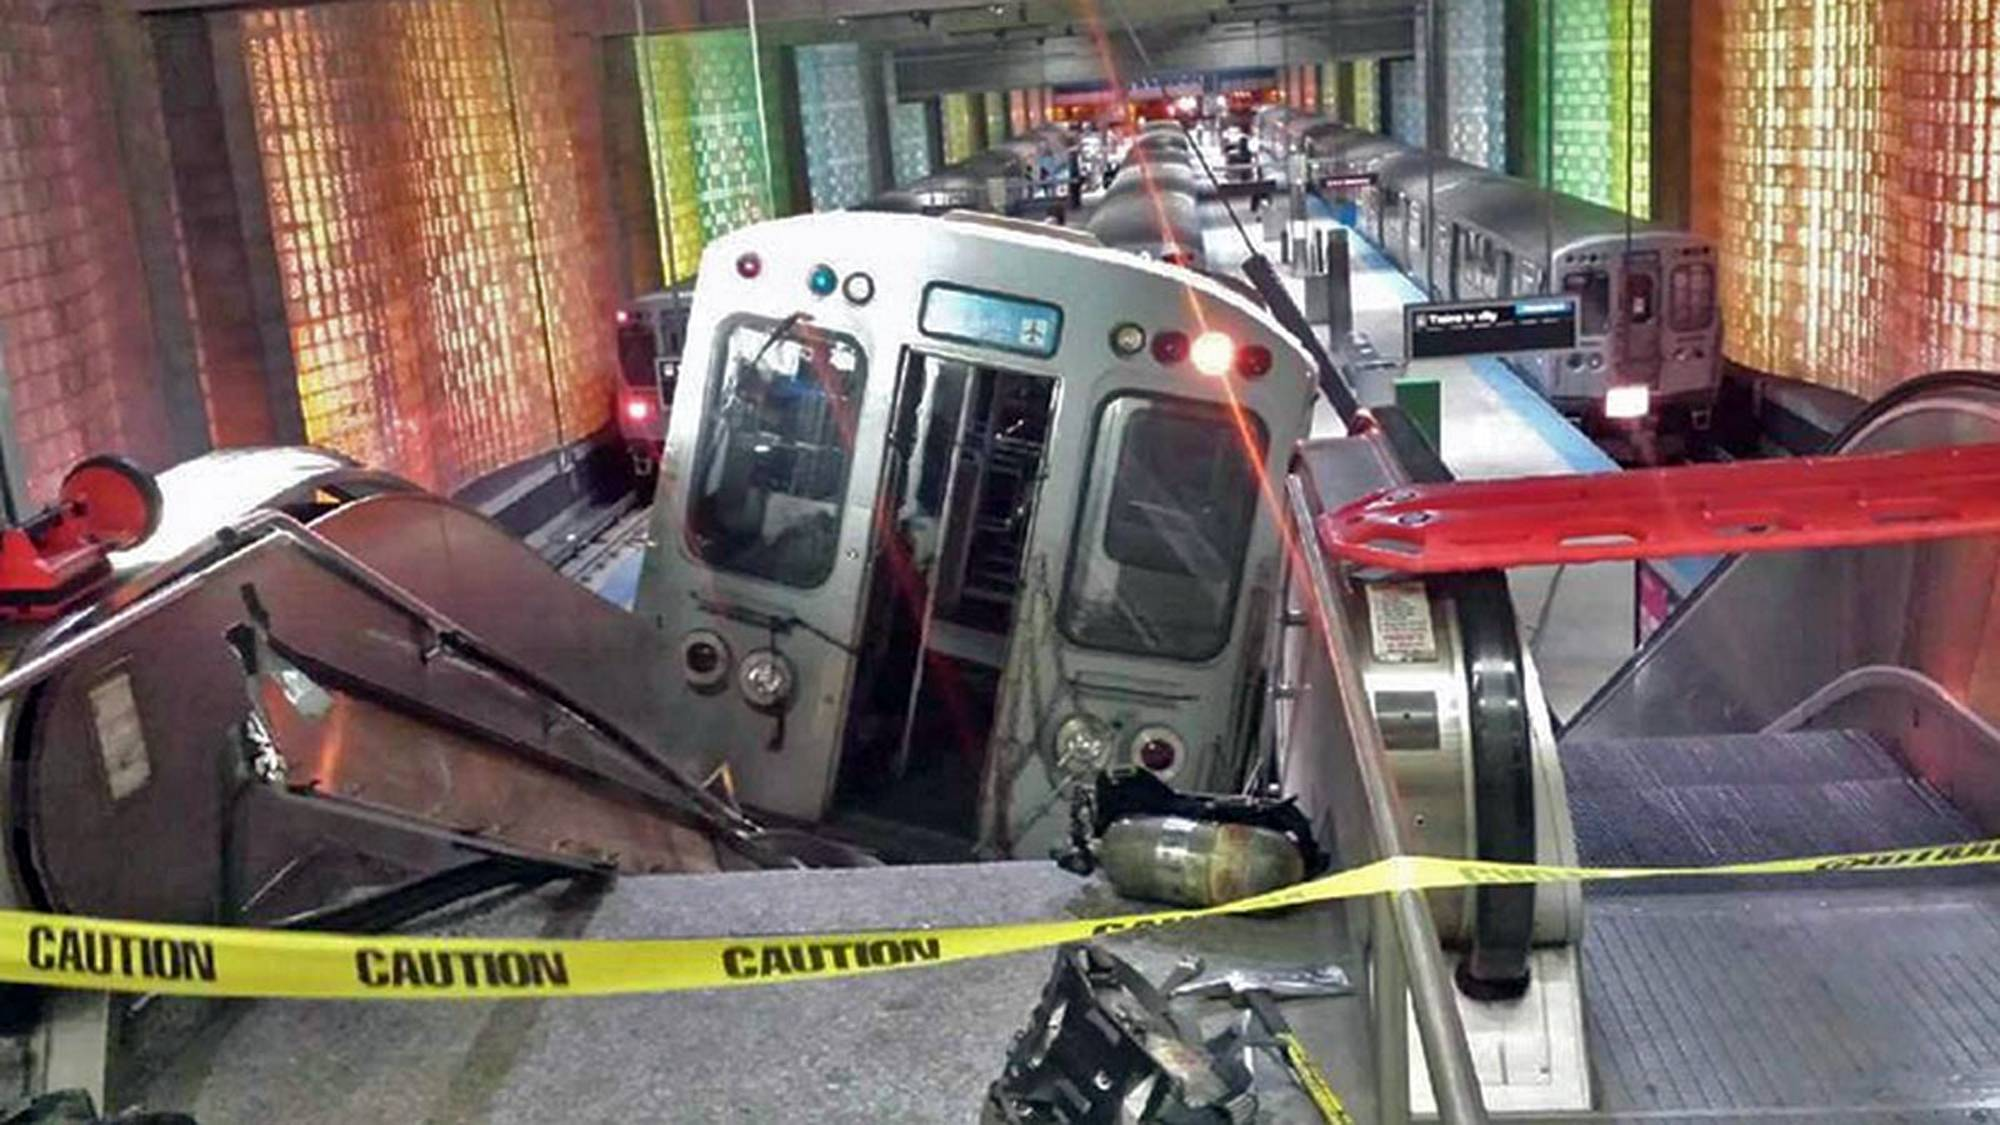 "A Chicago Transit Authority train car rests Monday on an escalator at the O'Hare Airport station after it derailed. More than 30 people were injured after the train ""climbed over the last stop, jumped up on the sidewalk and then went up the stairs and escalator,"" according to Chicago Fire Commissioner Jose Santiago."